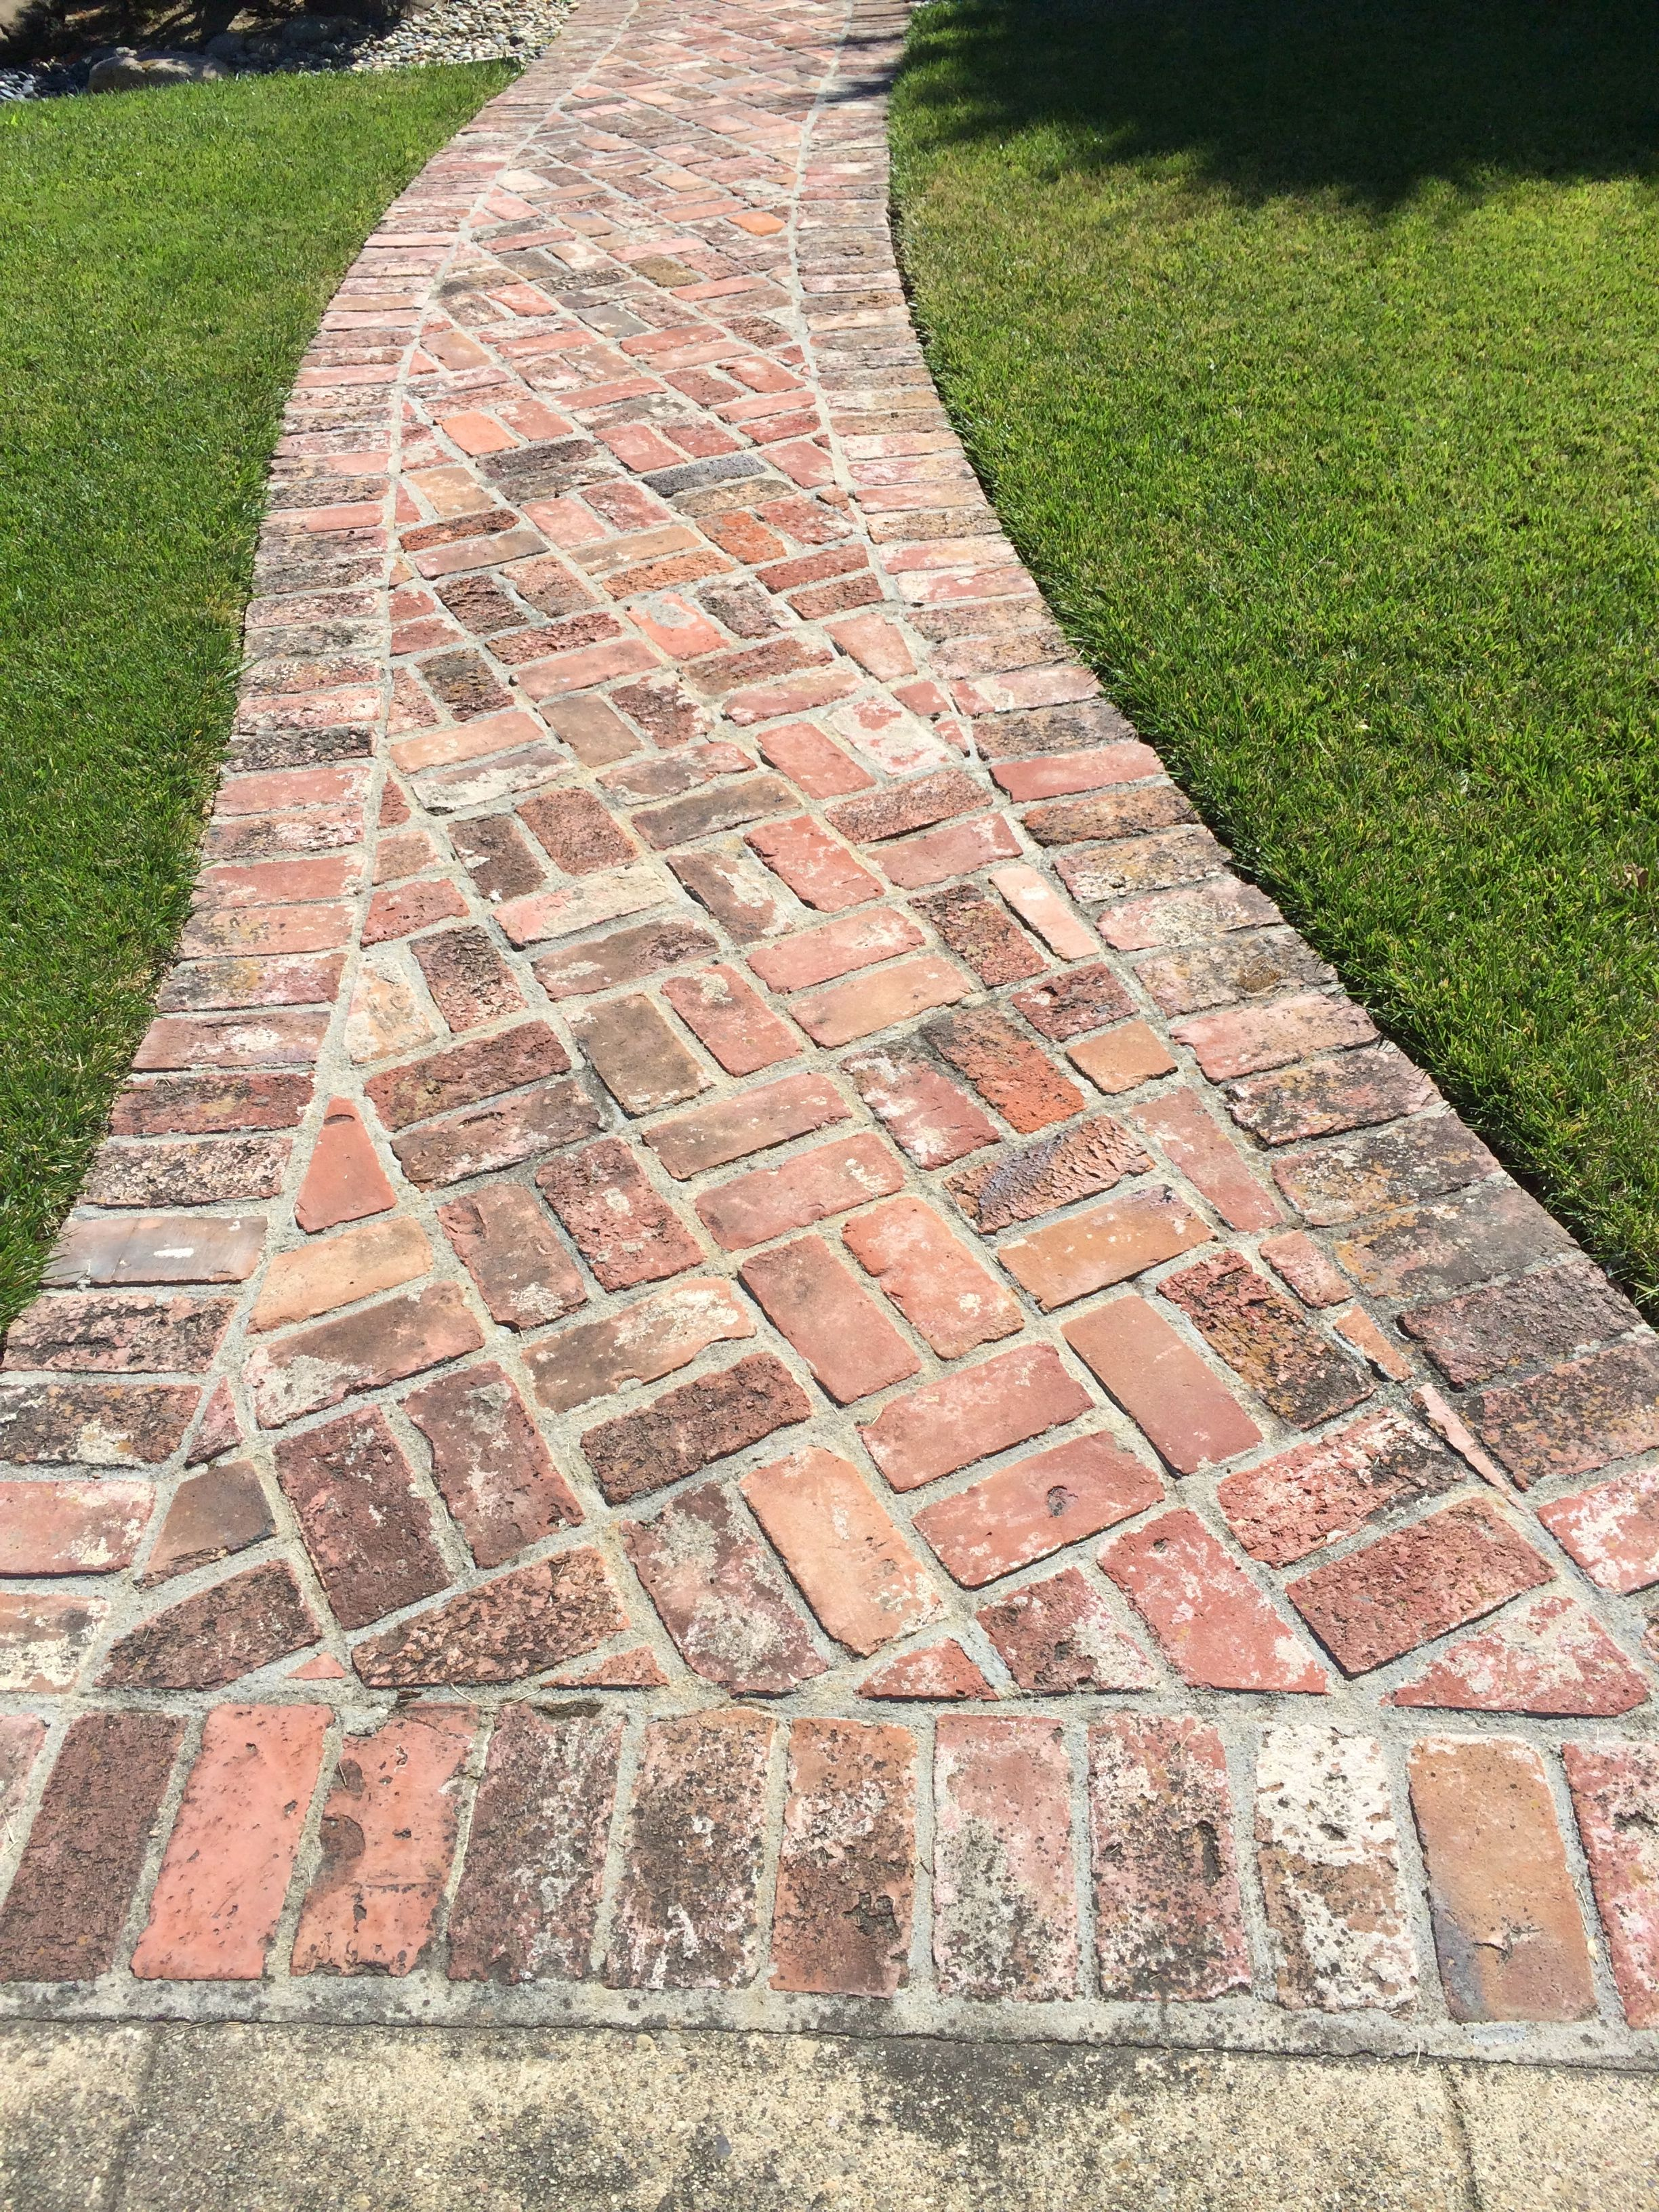 Contemporary with front steps gray brick driveway gray brick driveway - Herringbone Brick Pathway With Border On Concrete Brick Drivewaybrick Pathwaybrick Stepsbrick Pavingconcrete Front